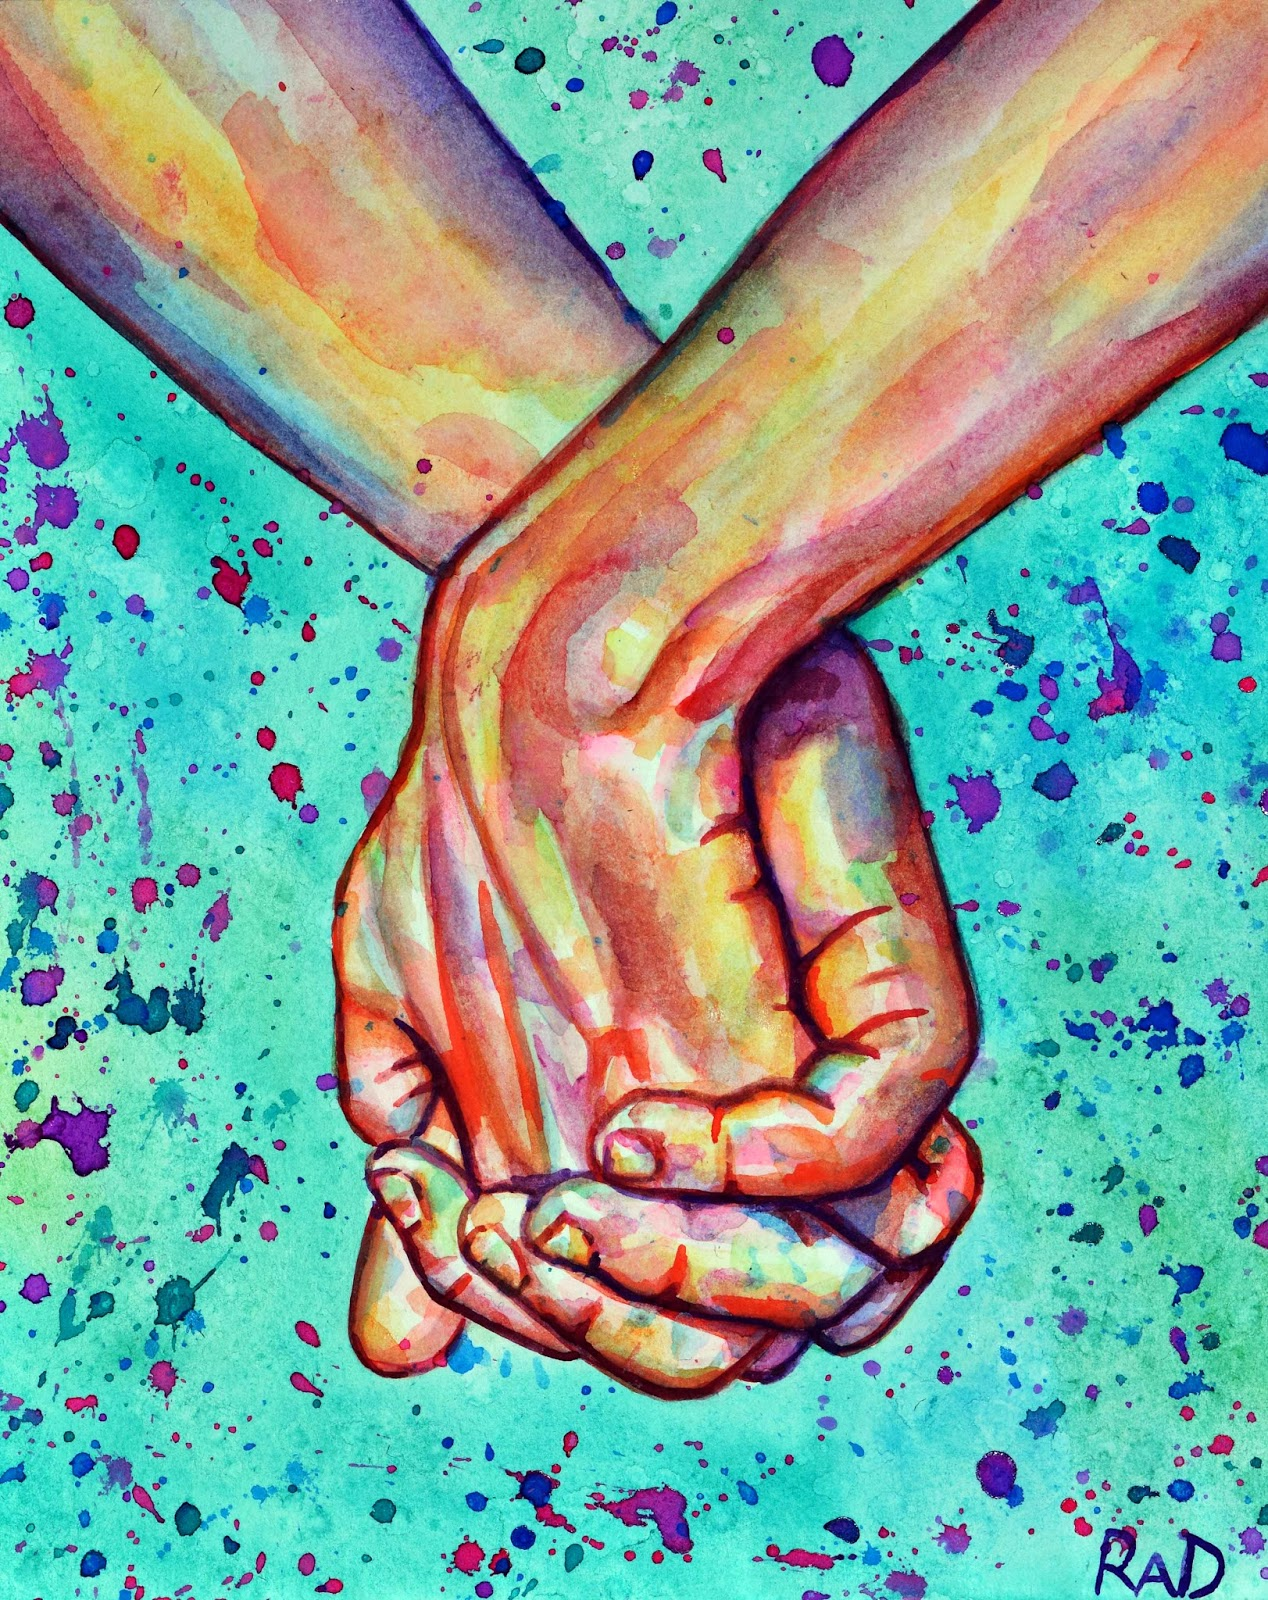 https://www.etsy.com/listing/151773873/original-watercolor-hand-in-hand?ref=shop_home_active_6